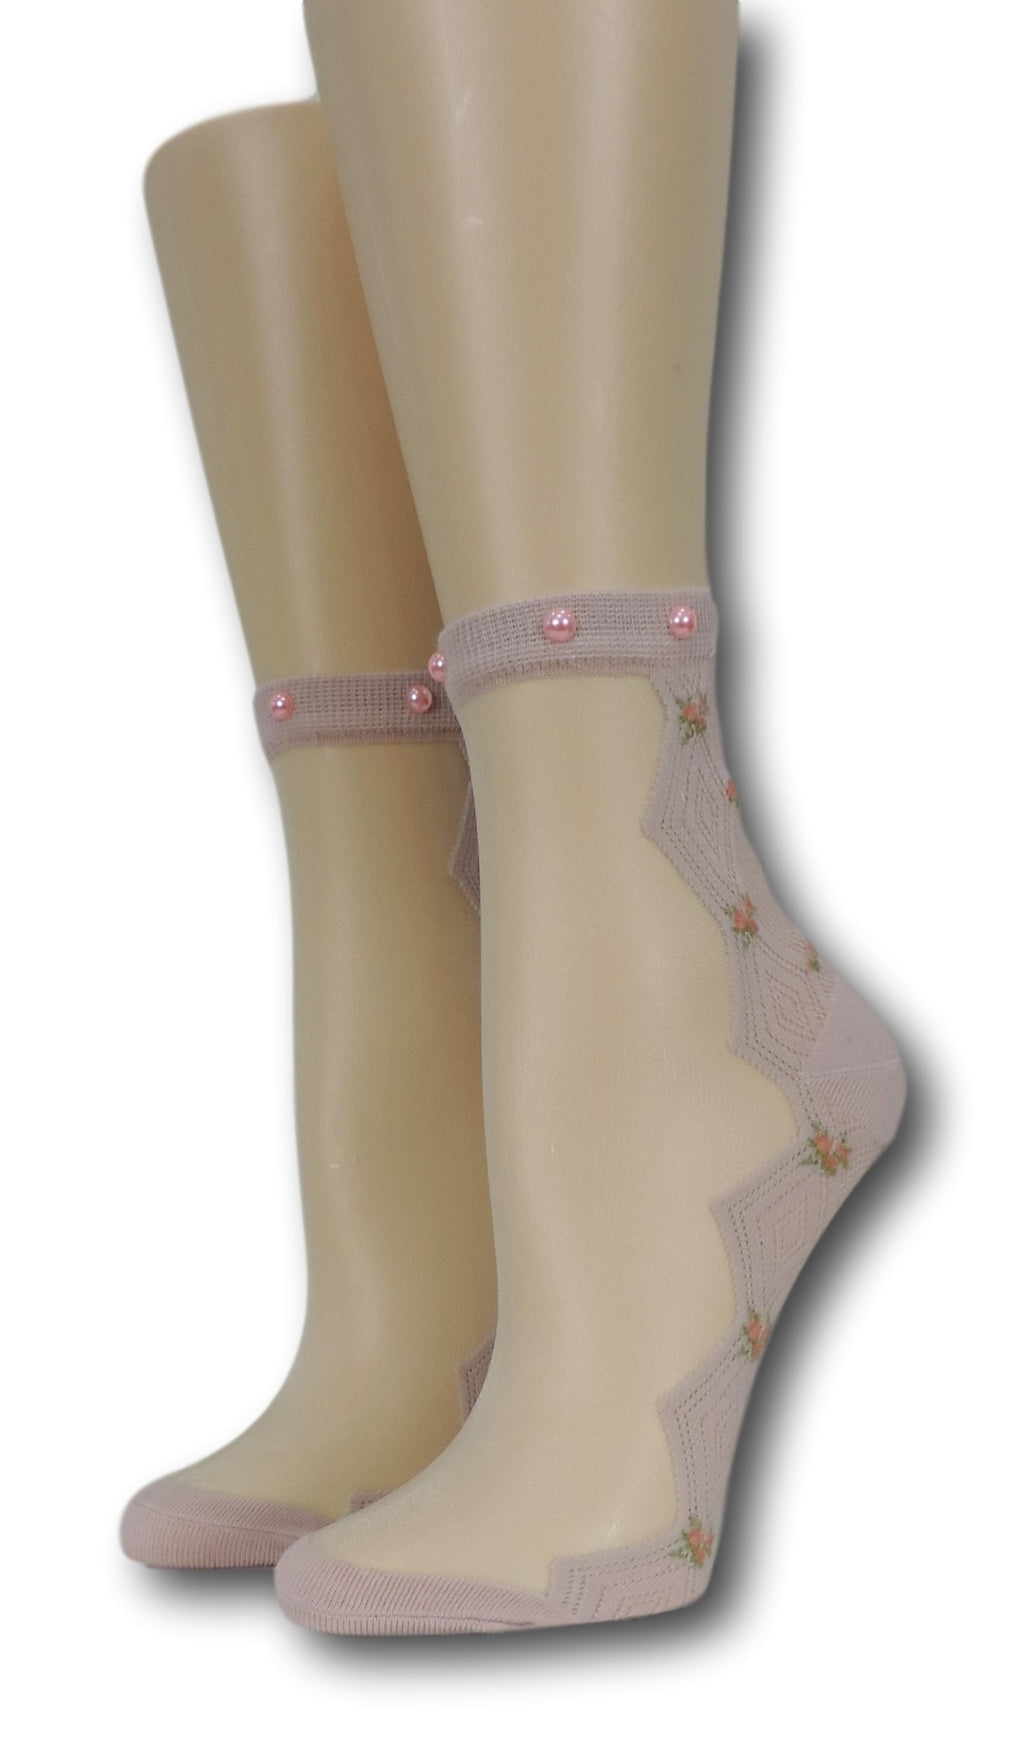 Pink Zig Zag Sheer Socks with beads